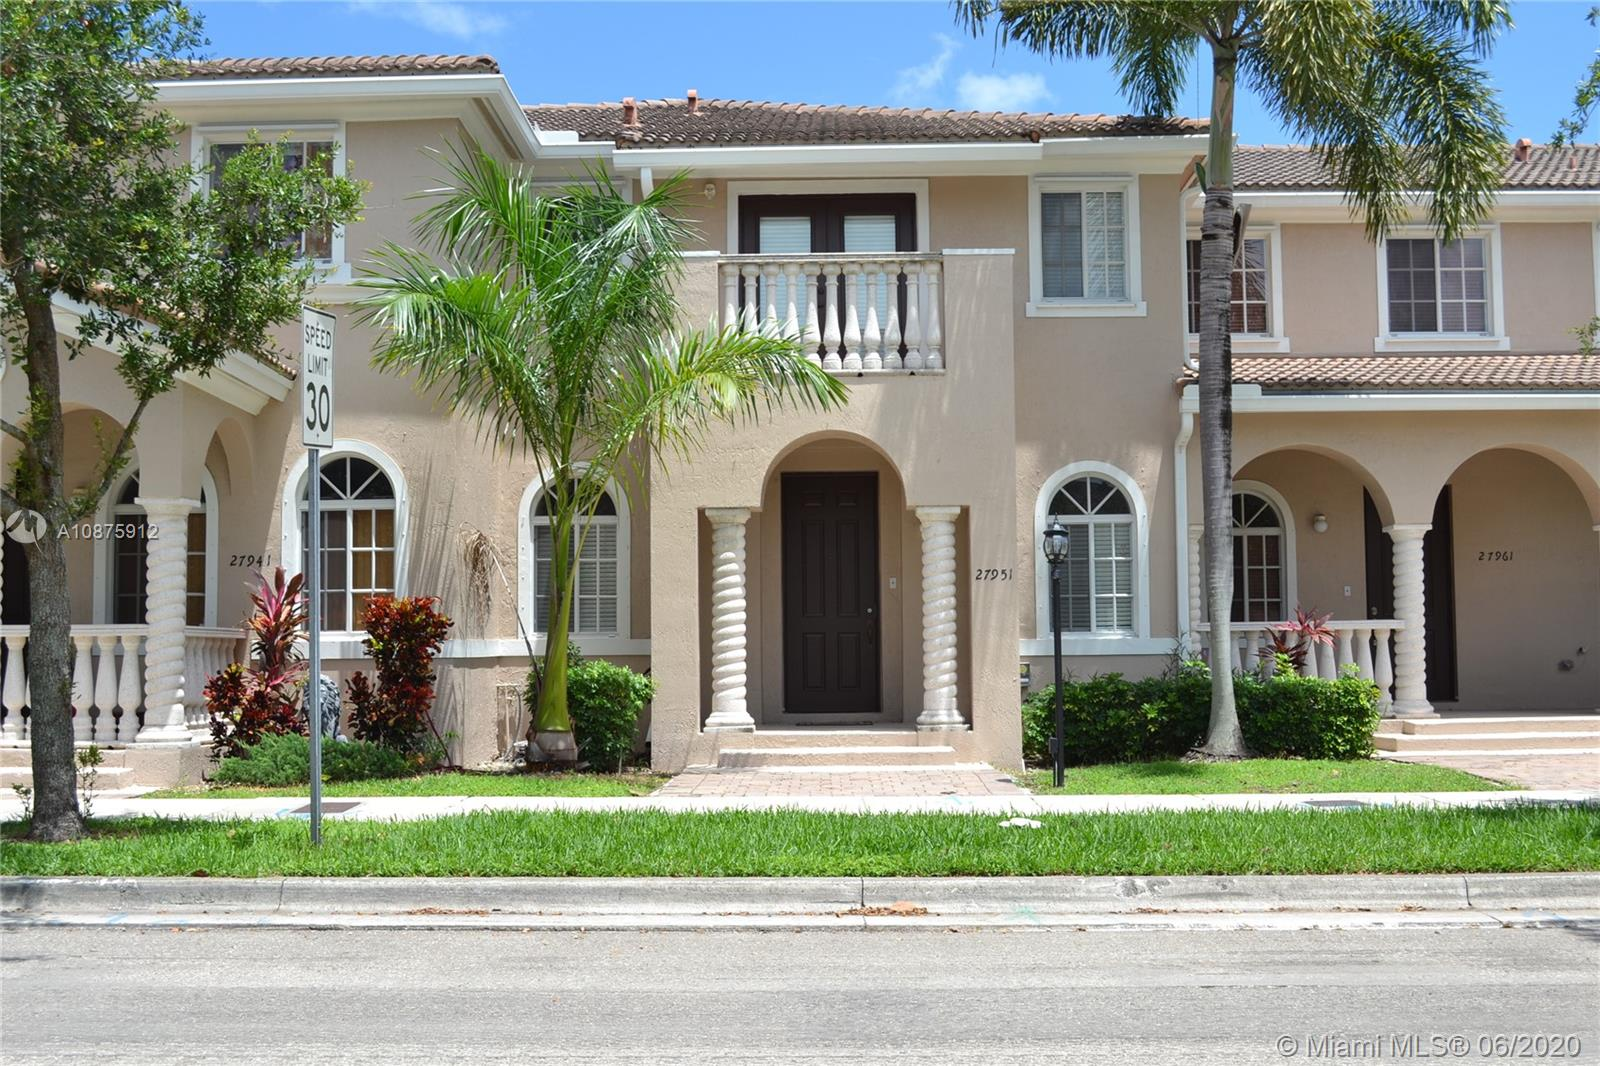 27951 SW 140th Ave Property Photo - Homestead, FL real estate listing